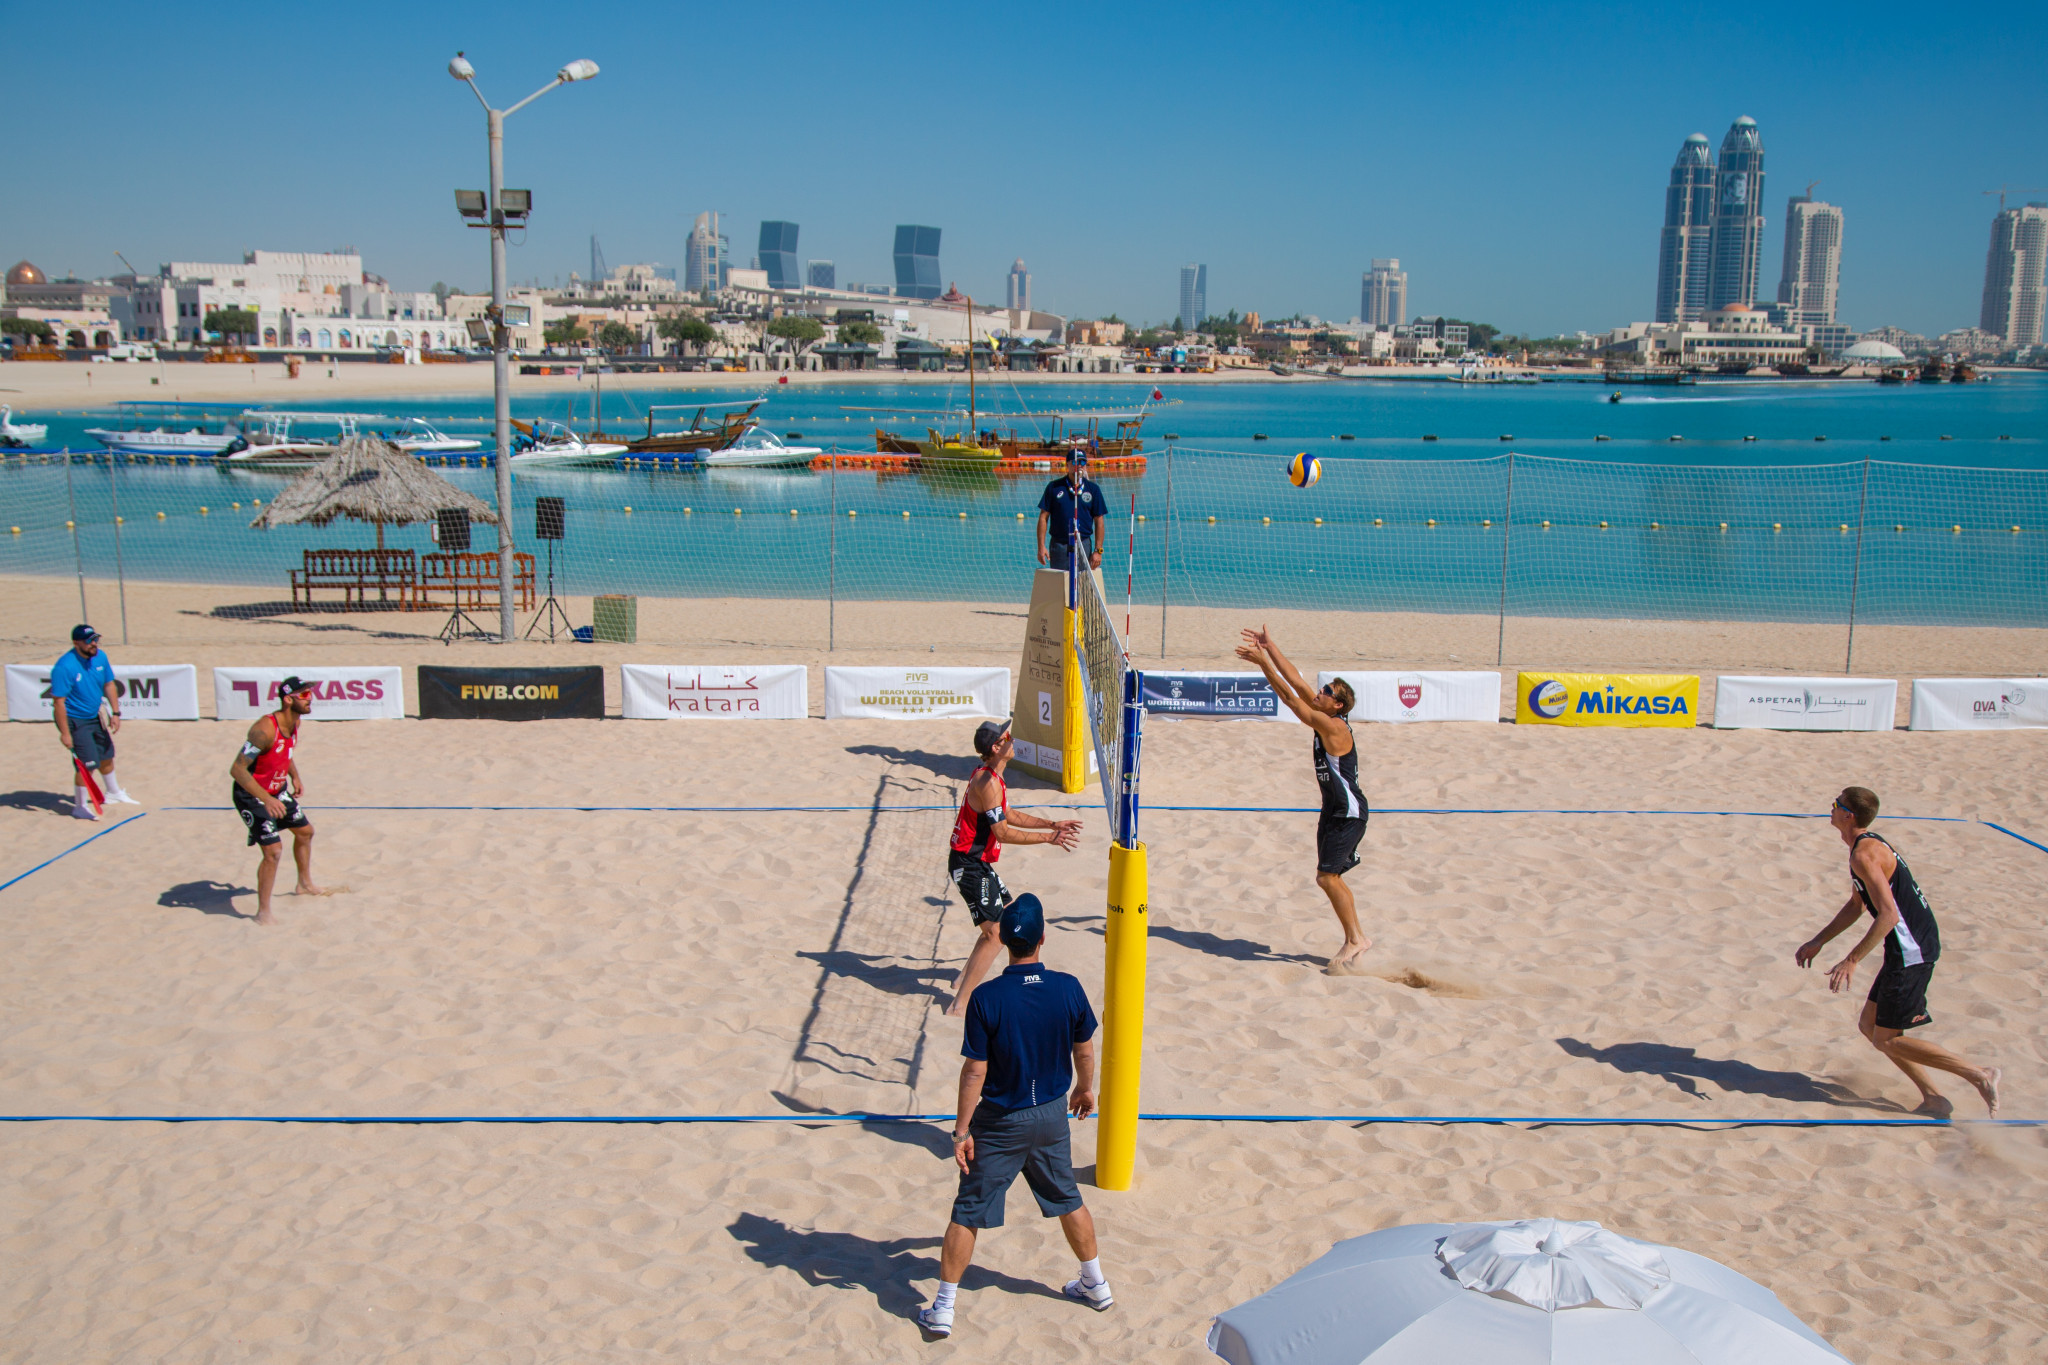 The four-star FIVB Beach Volleyball World Tour event is underway in Doha ©FIVB